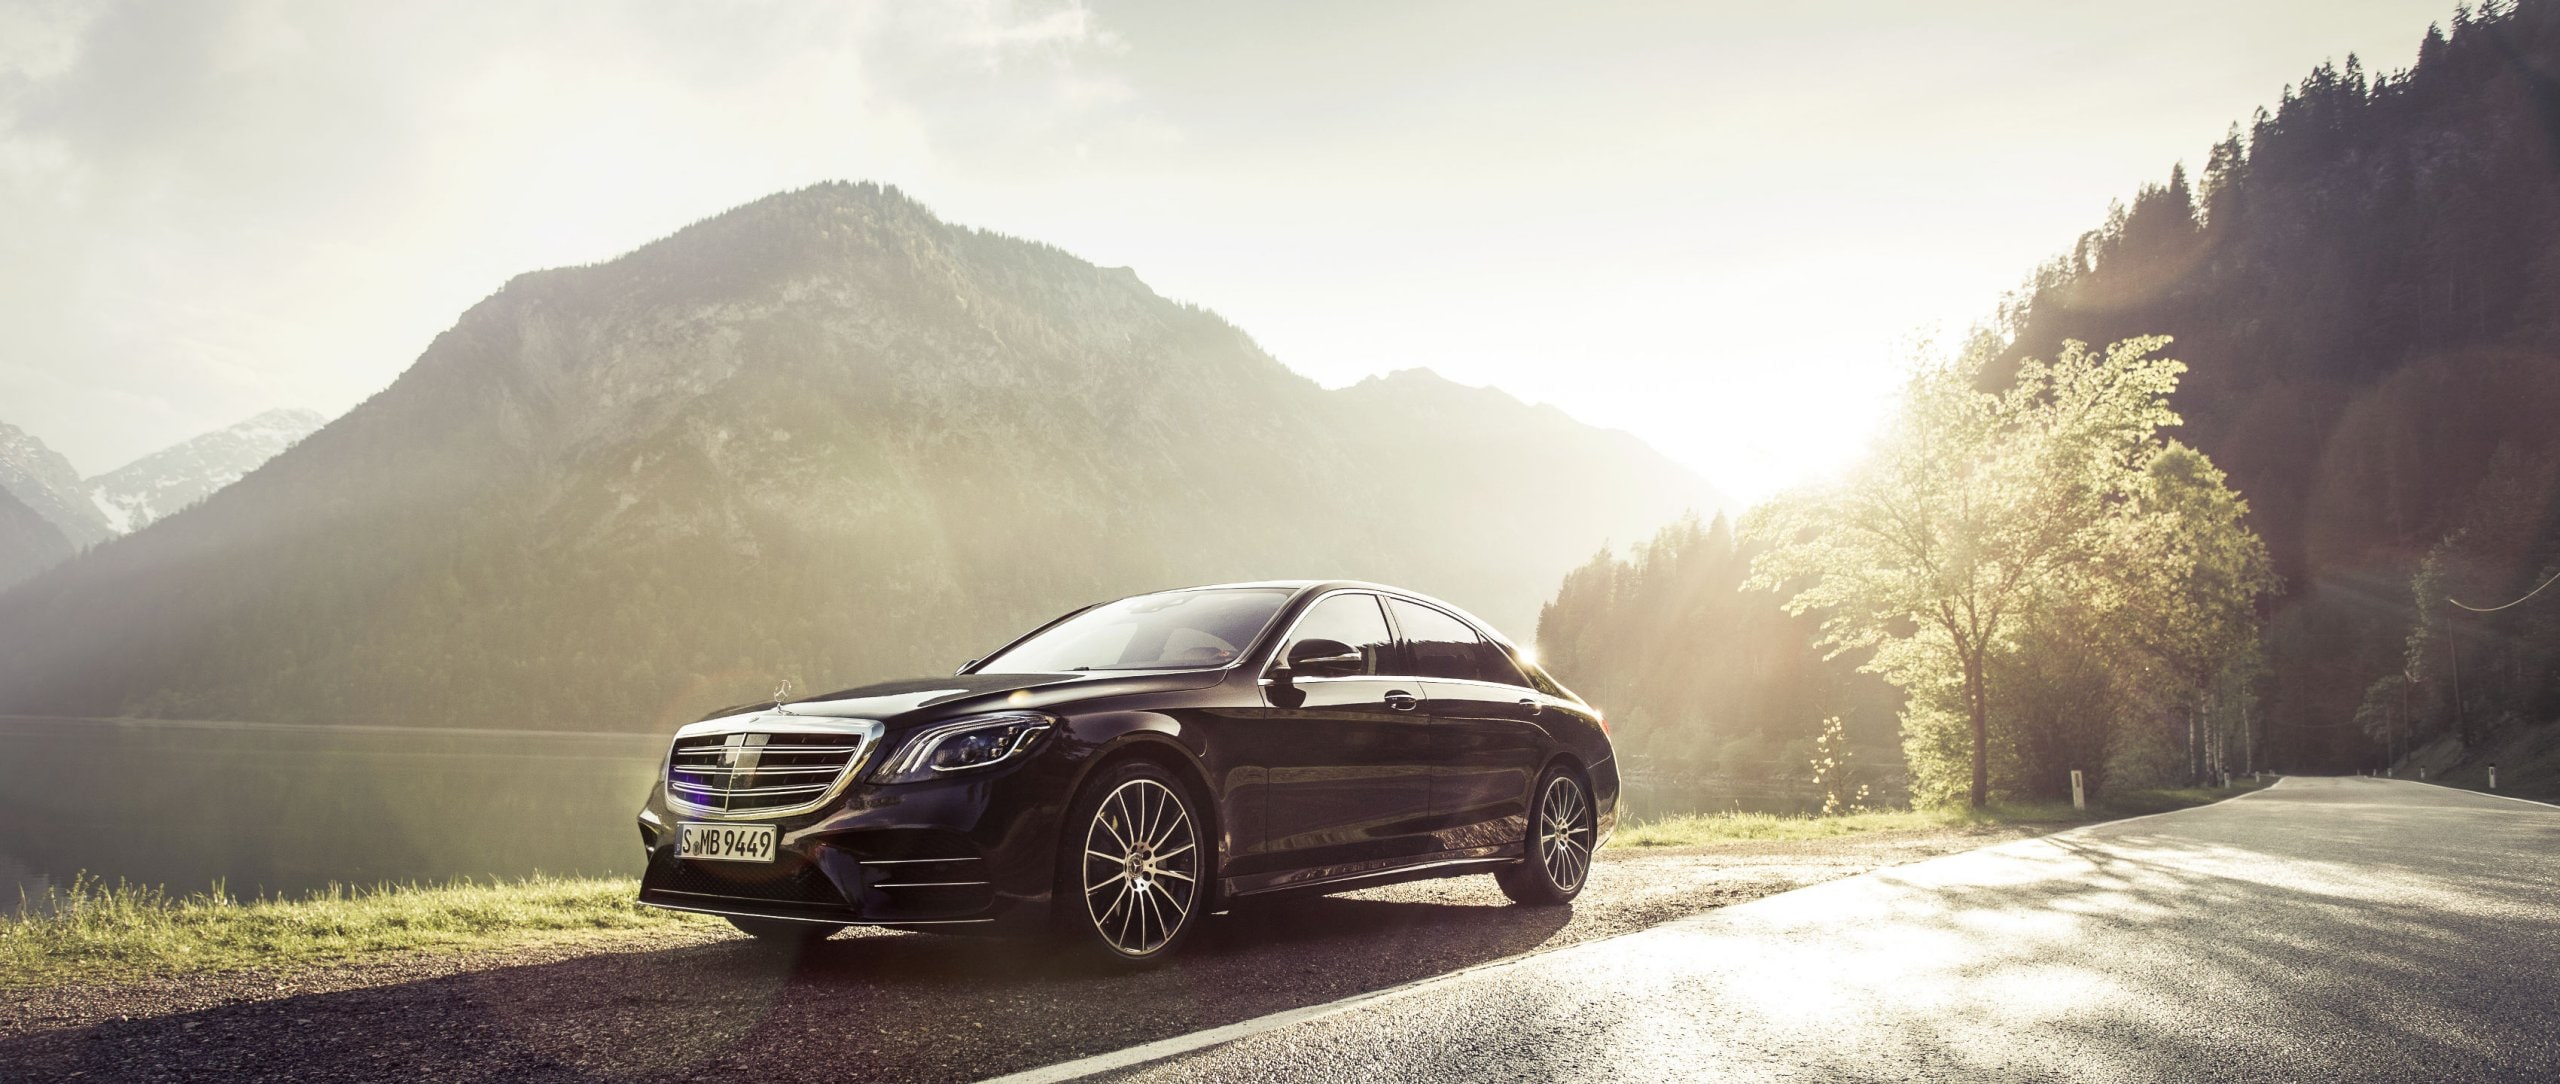 The Mercedes-Benz S 350 d 4MATIC (V 222) in black at the Plansee in Tyrol.